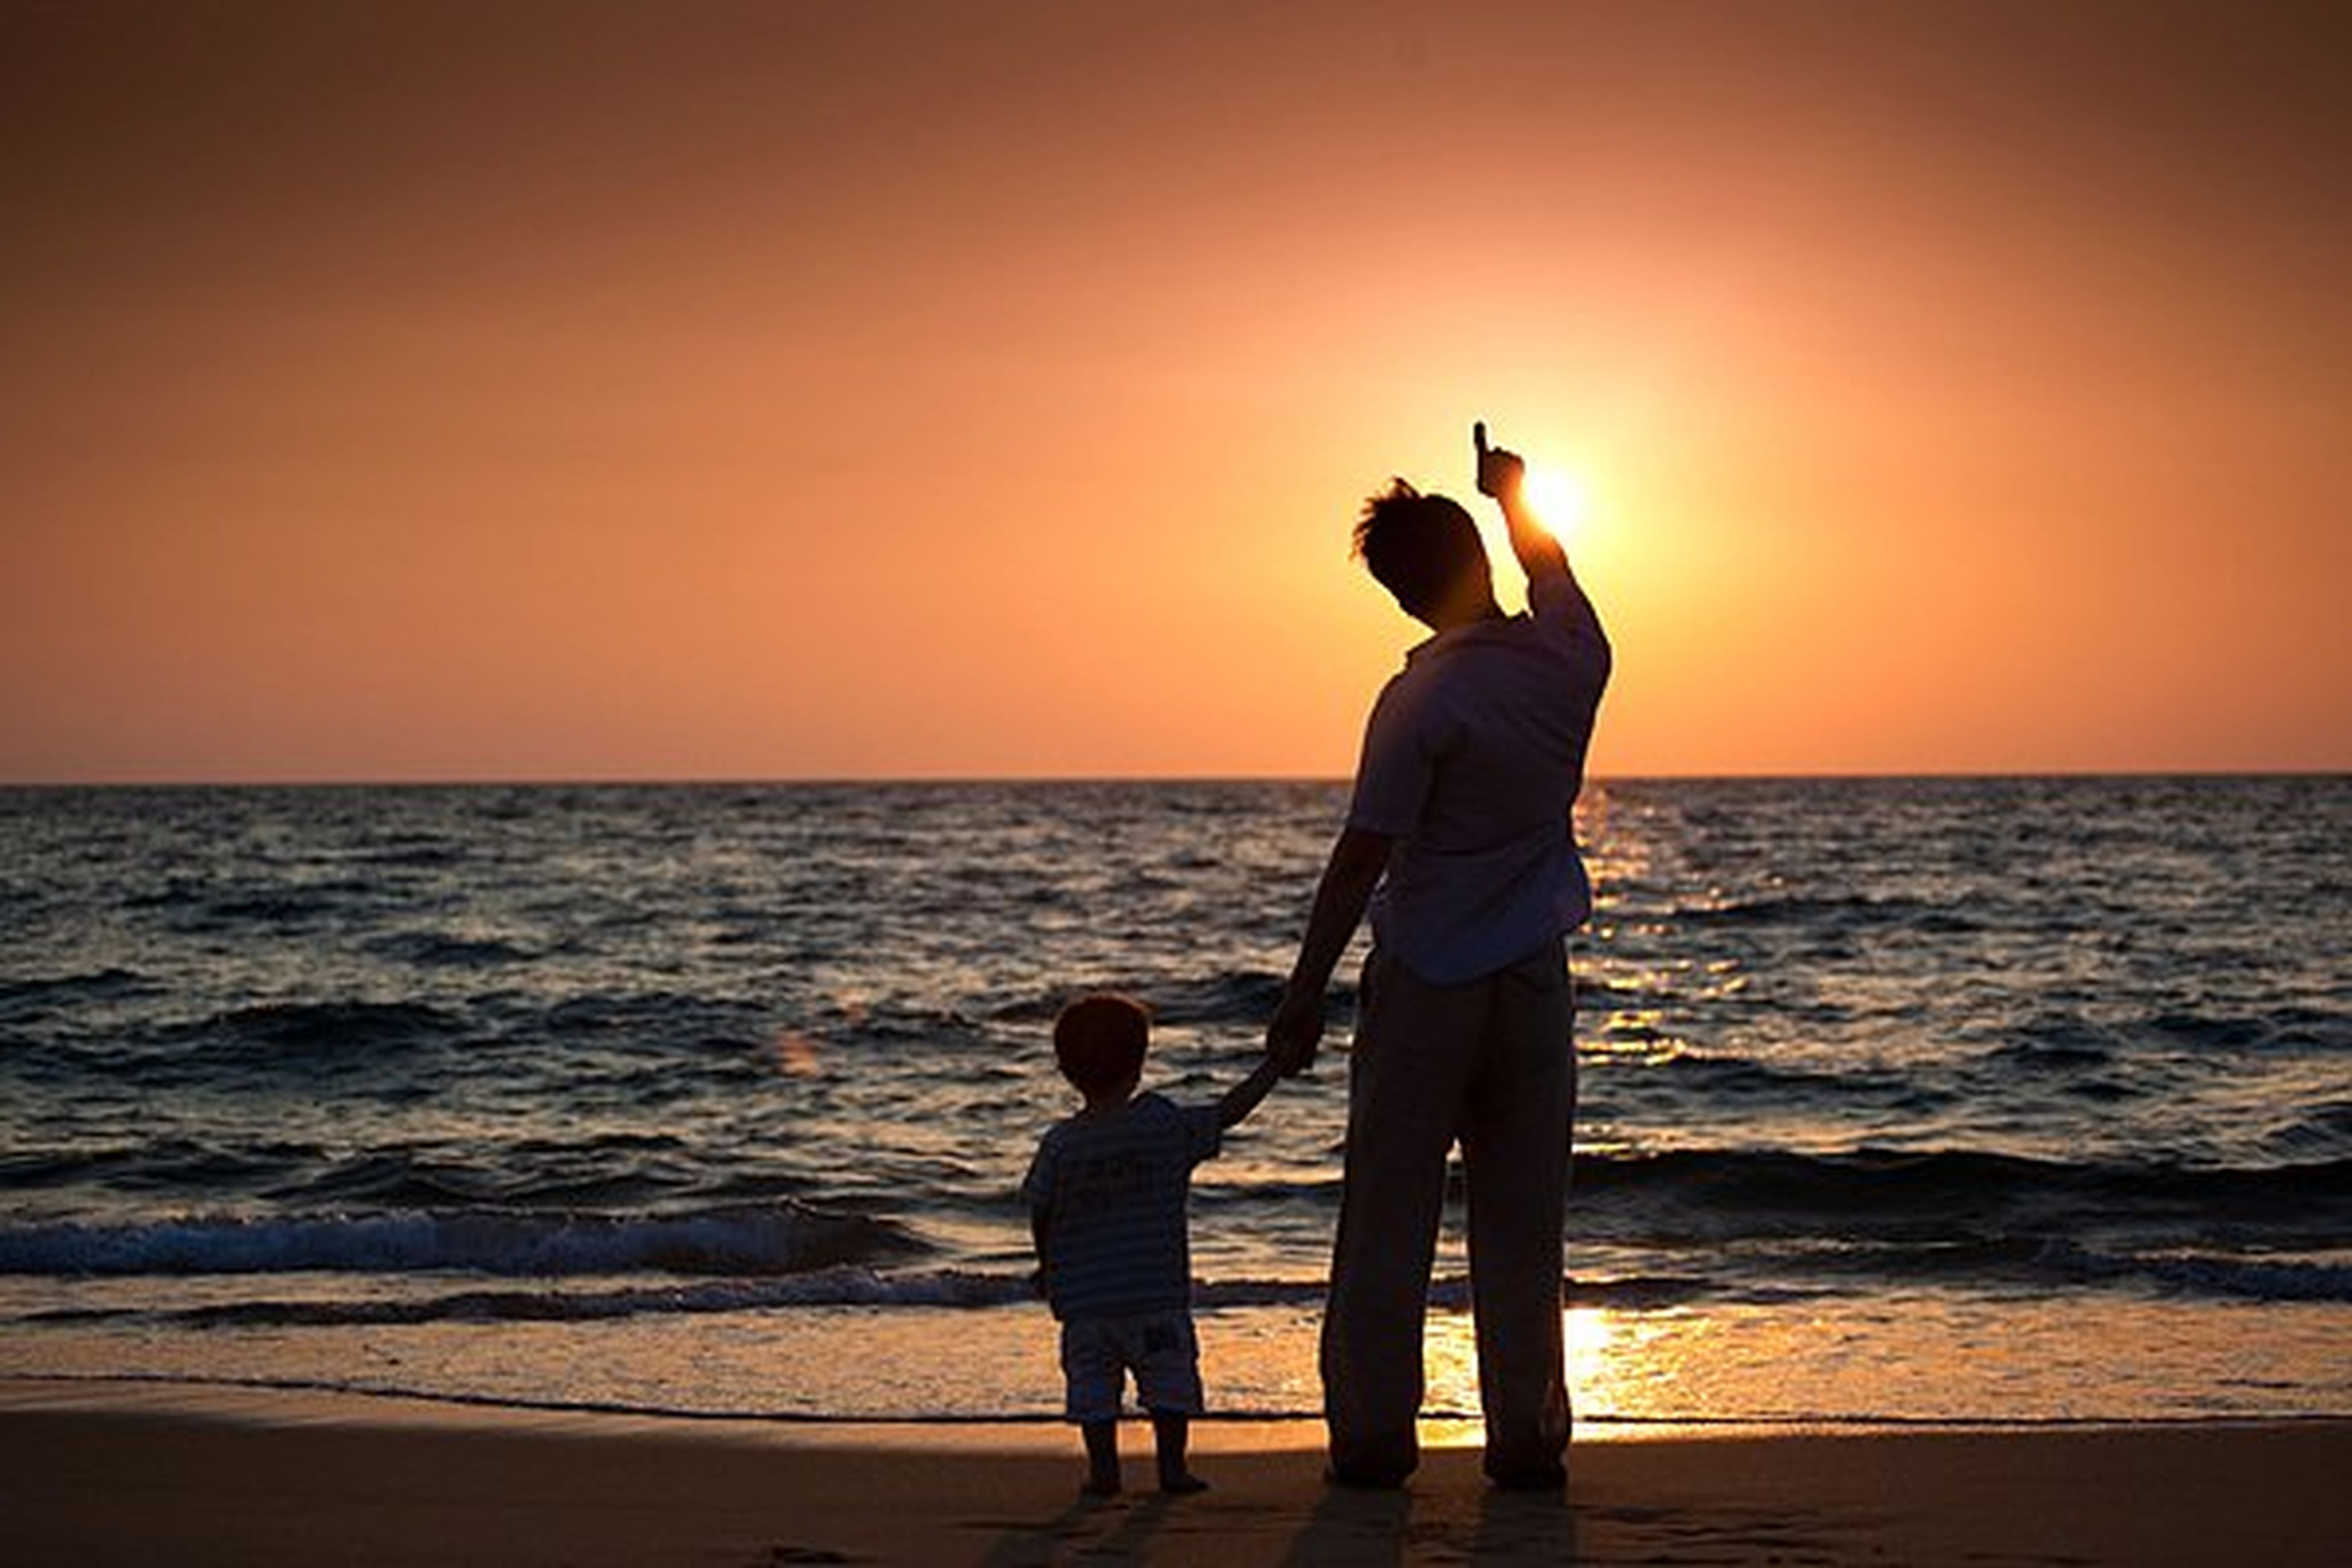 sea, child, beach, sunset, males, boys, happiness, horizon over water, family, human body part, outdoors, nature, two people, silhouette, adult, sand, people, vacations, beauty in nature, togetherness, day